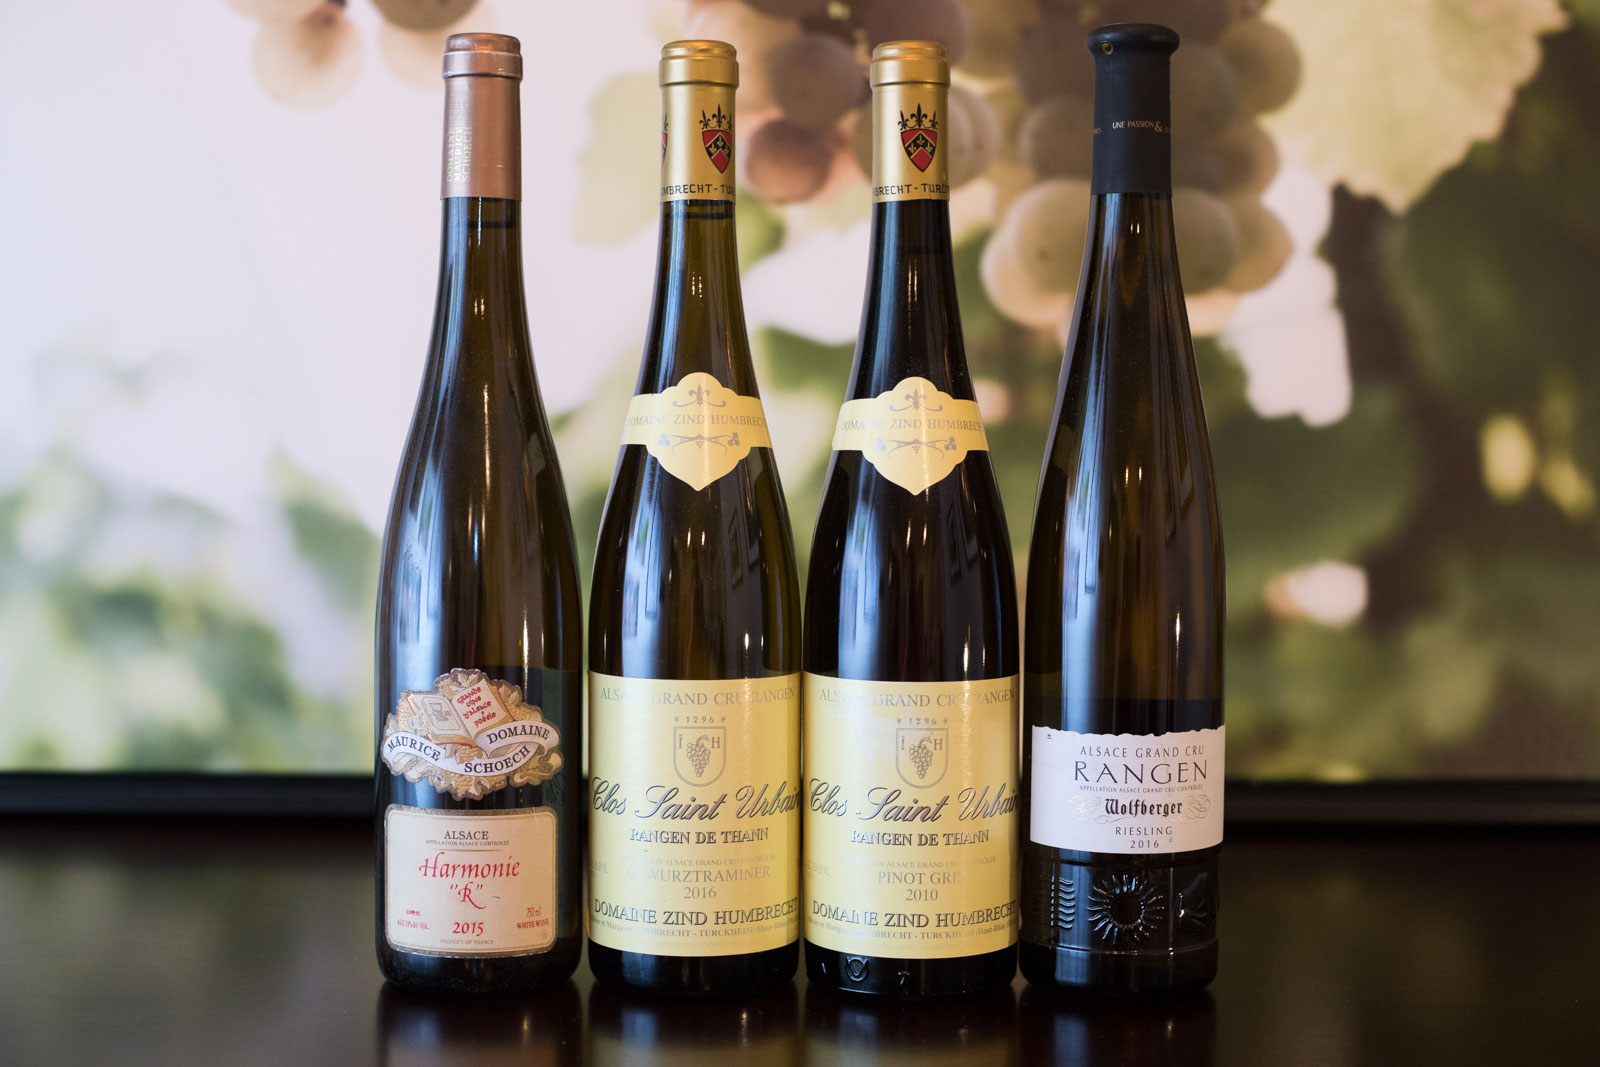 Four wines from the Grand Cru Rangen de Thann ©Kevin Day/Opening a Bottle